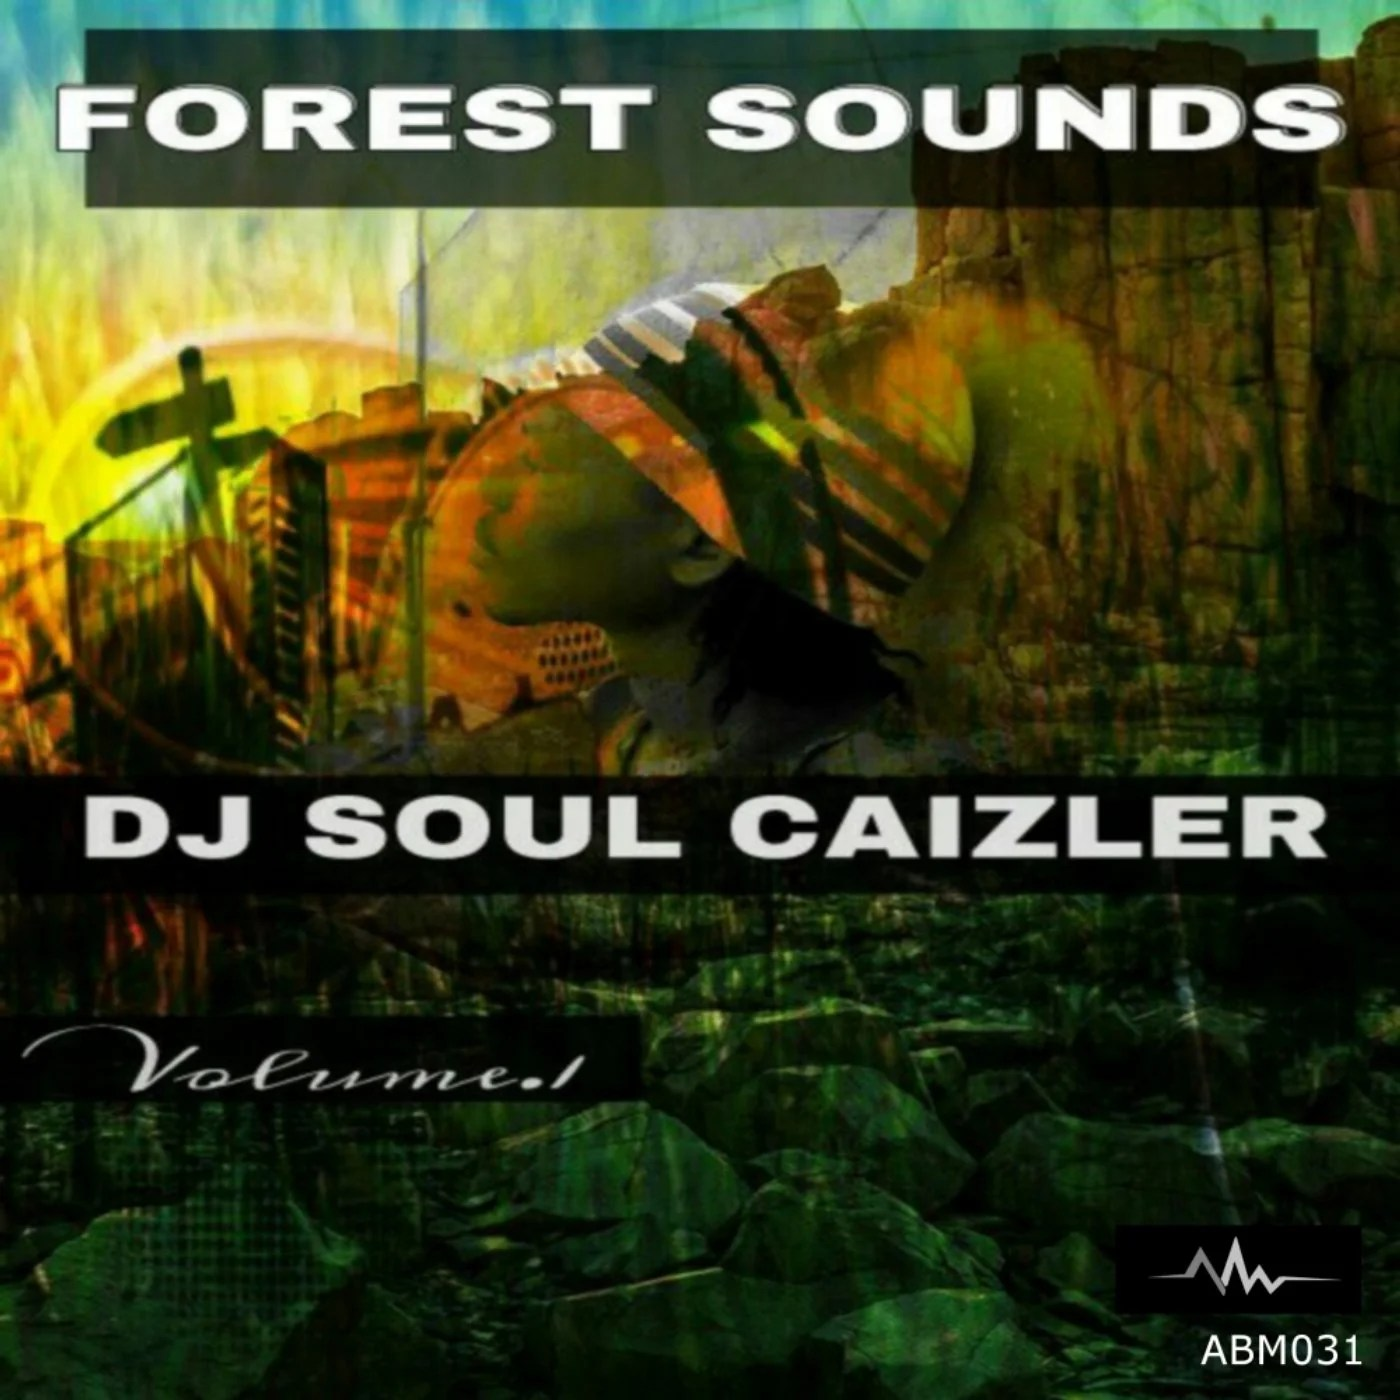 the wolfsong is the sound of the rending you will suffer, in itself a murdering. Forest Sounds Vol 1 From Abyss Music On Beatport